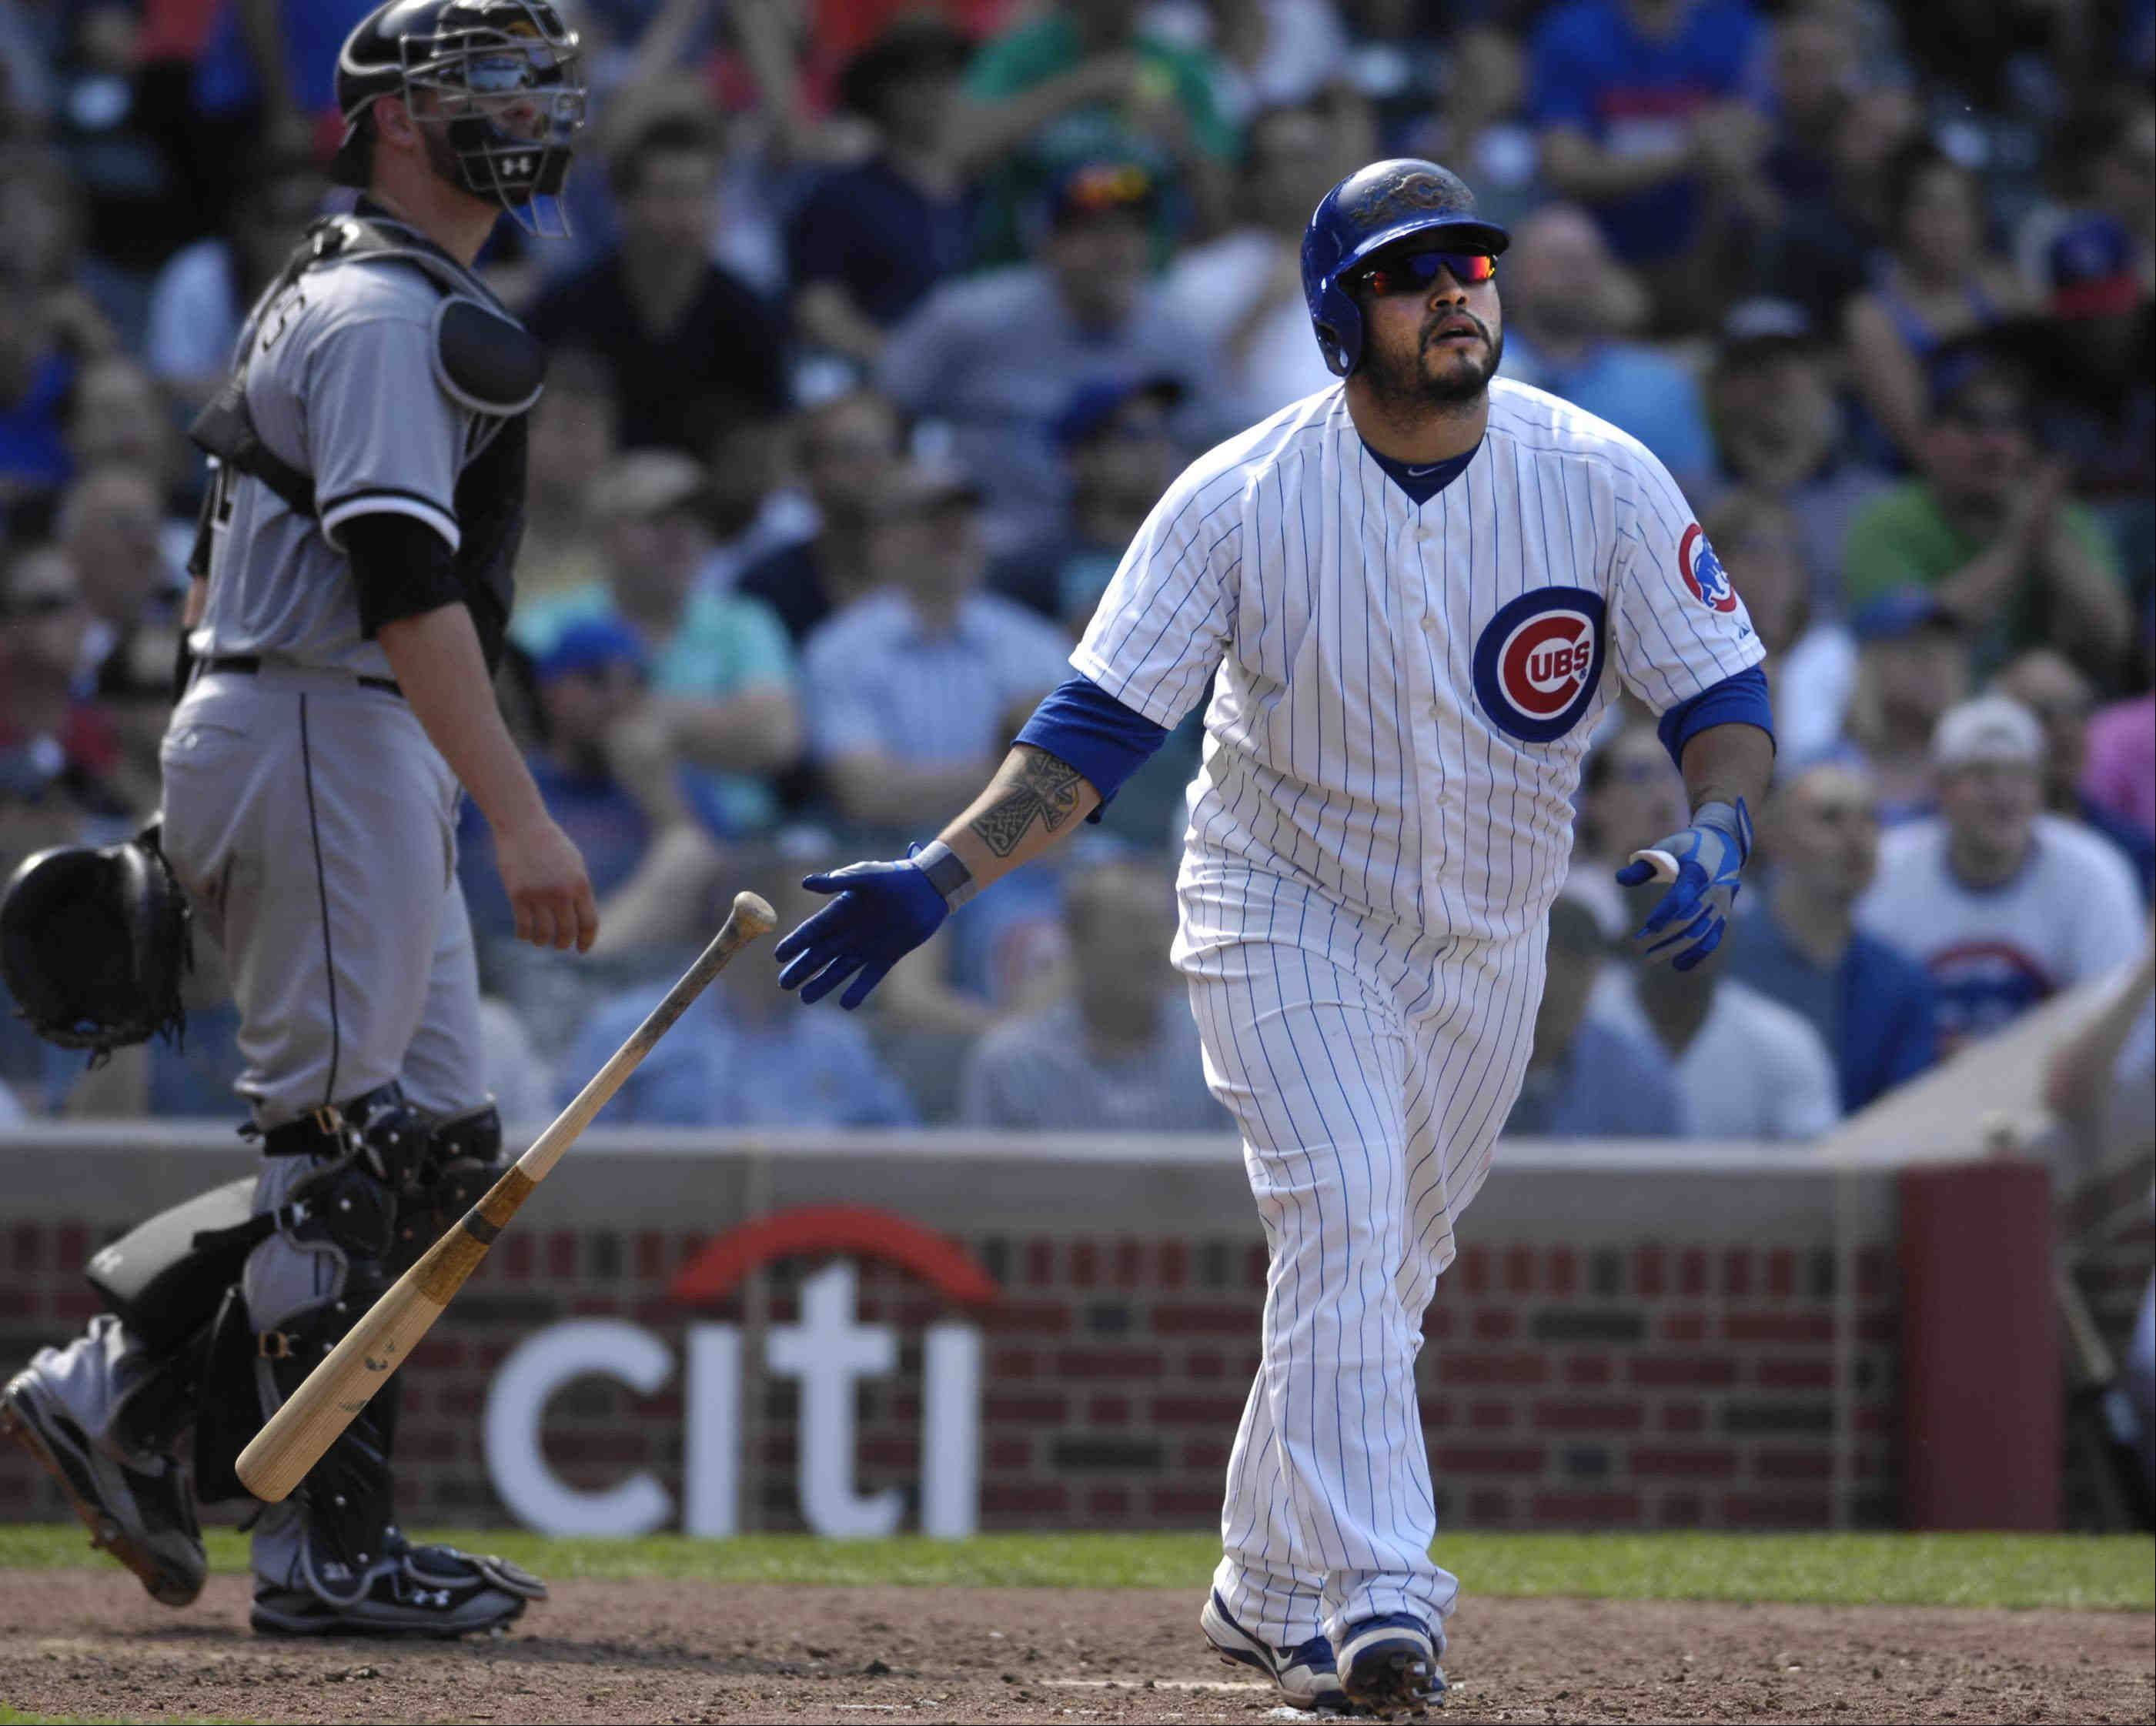 Chicago Cubs catcher Dioner Navarro tosses hit bat aside after hitting his third home run of the day.